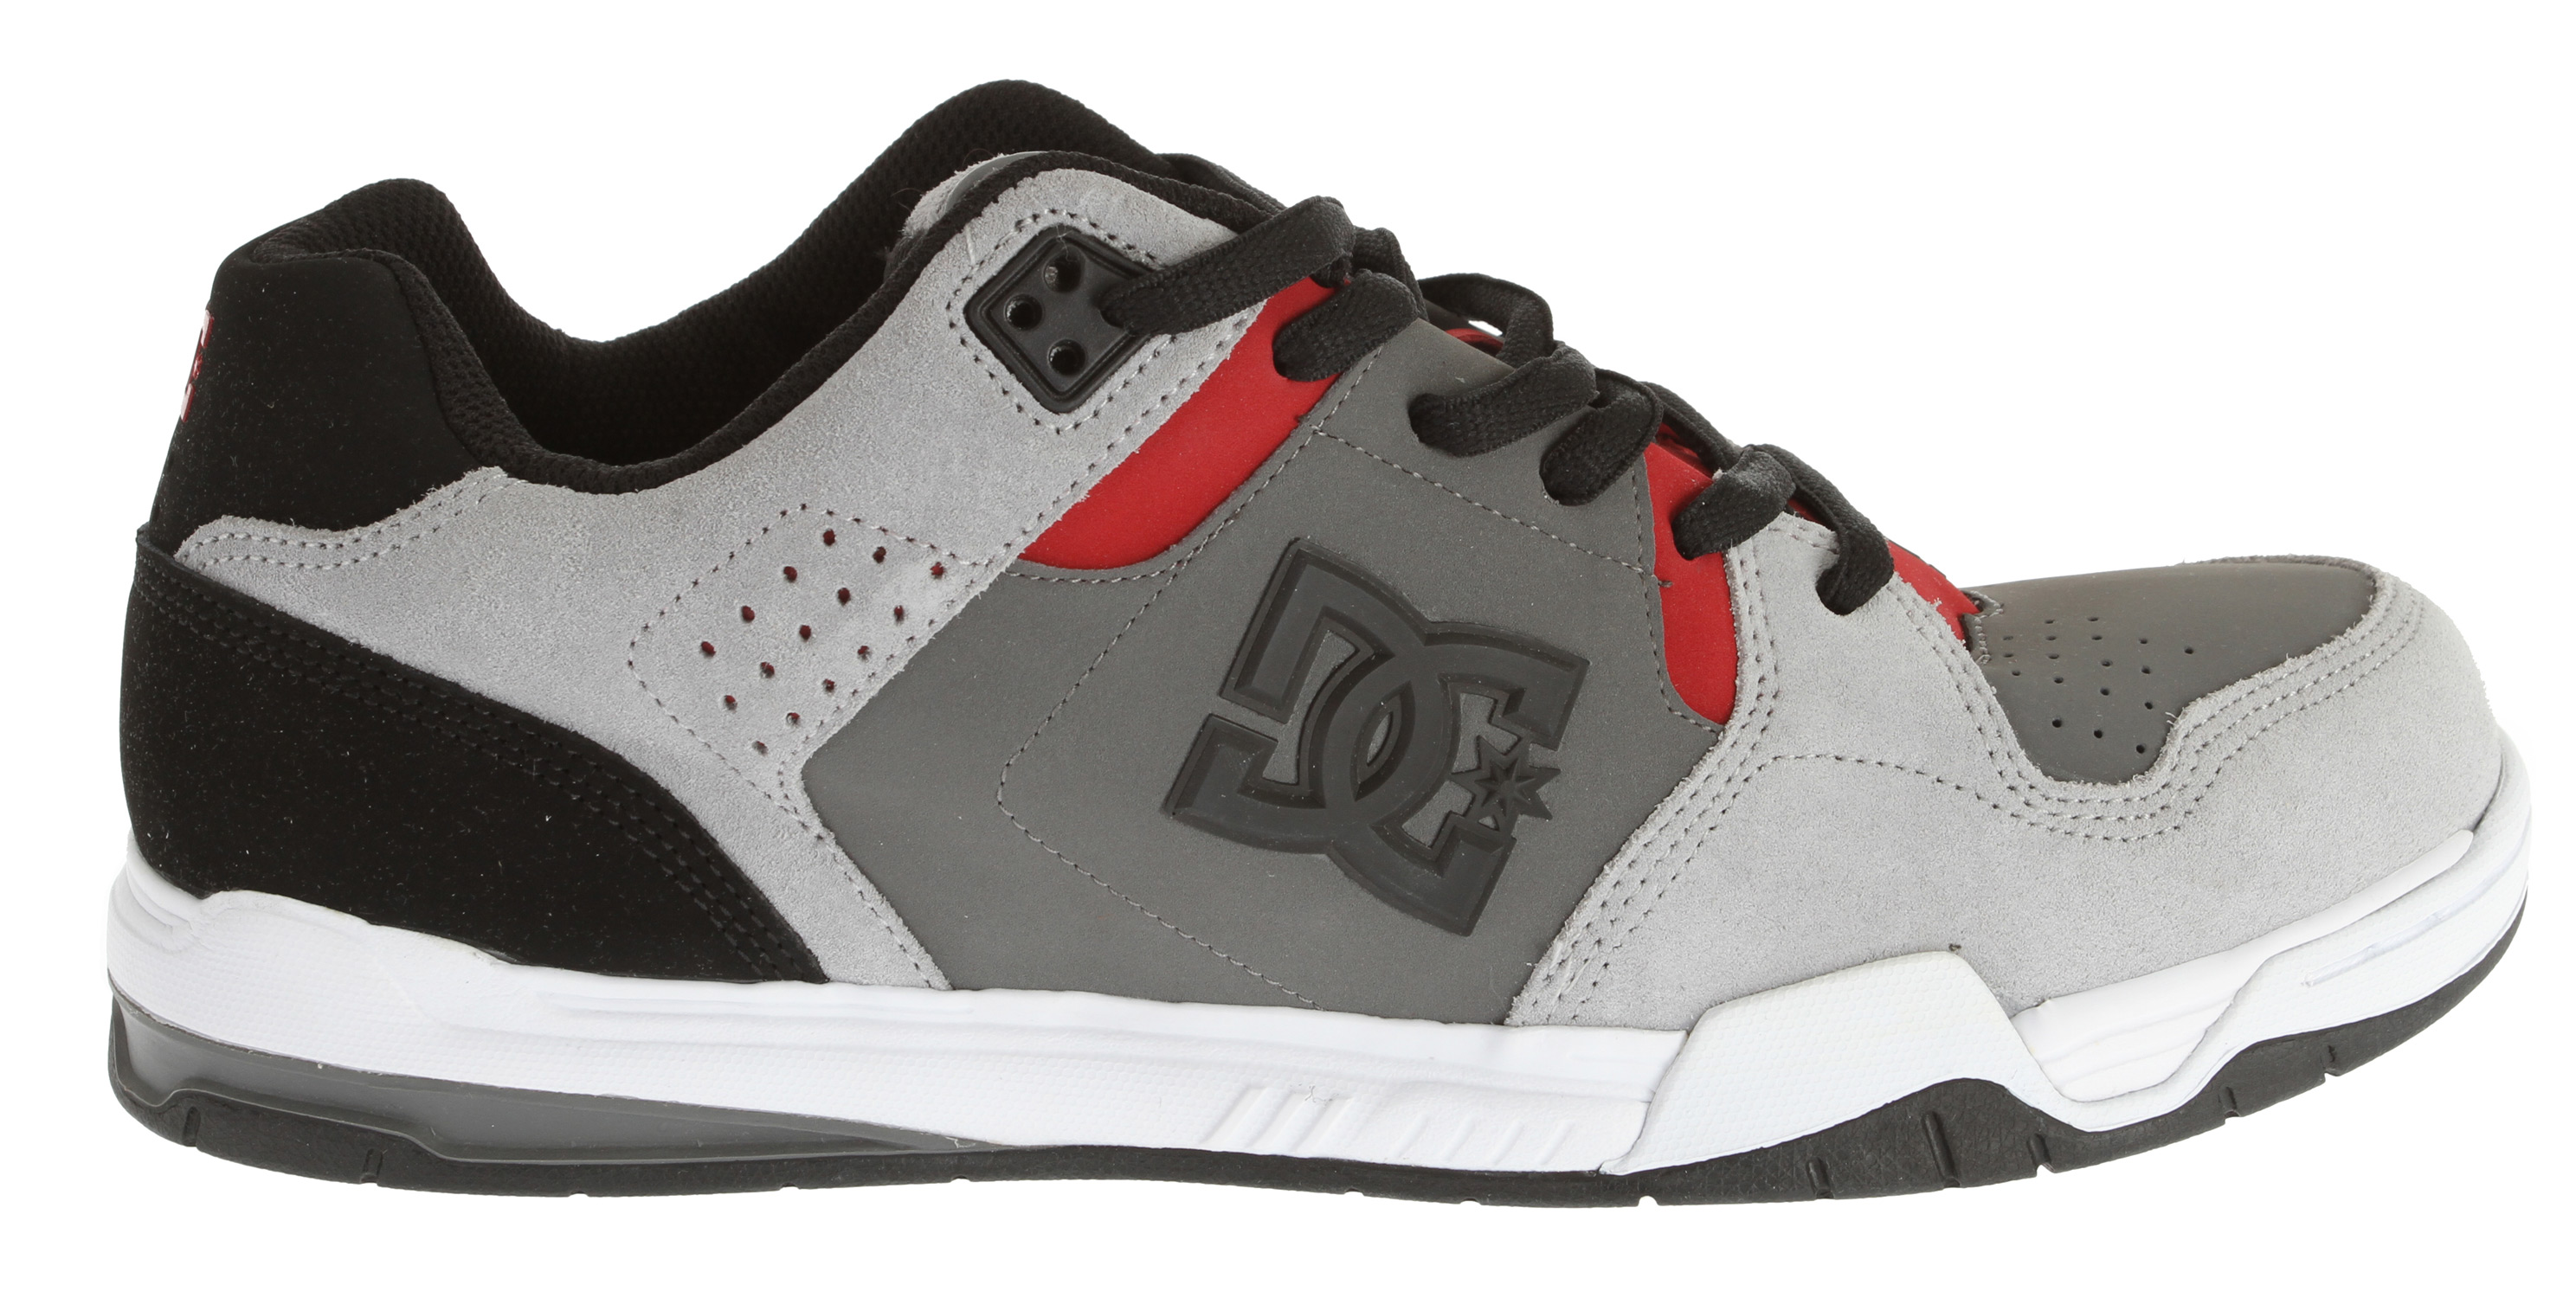 "Skateboard Key Features of the DC Decibel Skate Shoes: Heavy-Duty Suede Upper Perforated Upper Panel TPU Eyelets Foam-Padded Tongue and Collar Lightweight Mesh Tongue DC's Performance Wrap Cup Sole Lightweight Molded EVA Midsole Abrasion-Resistant Sticky Rubber Outsole with DC's Trademarked ""Pill"" Pattern - $44.95"